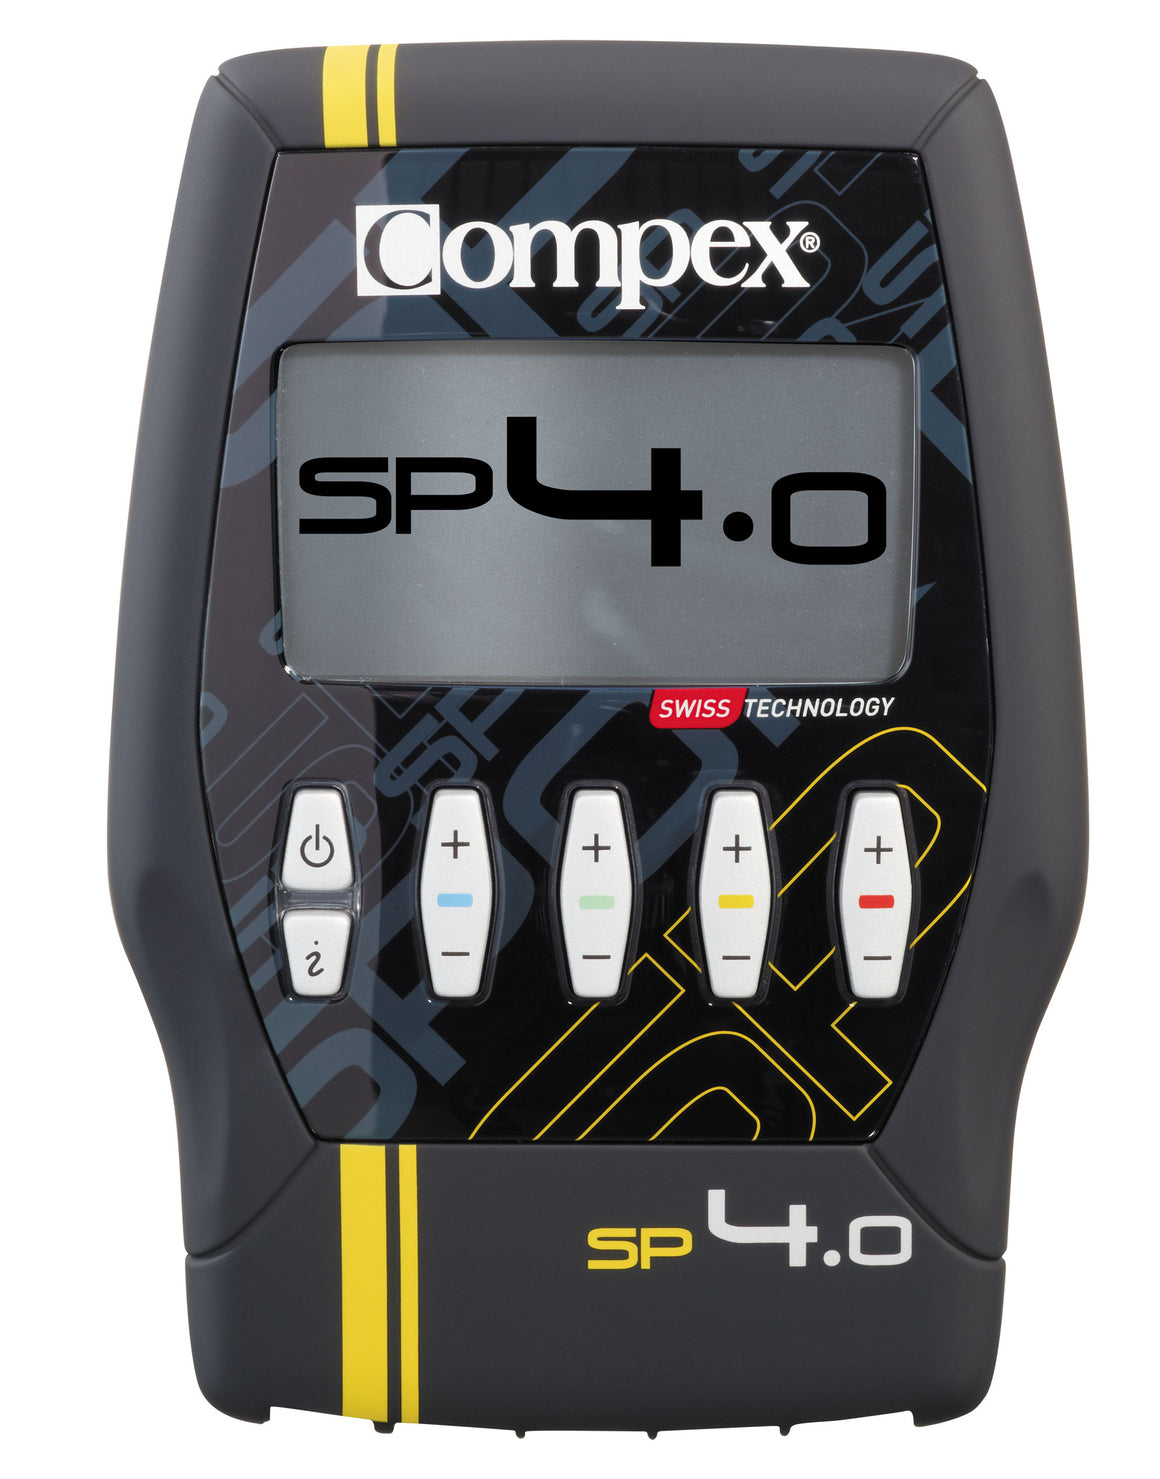 Compex SP 4.0 Muscle Stimulator